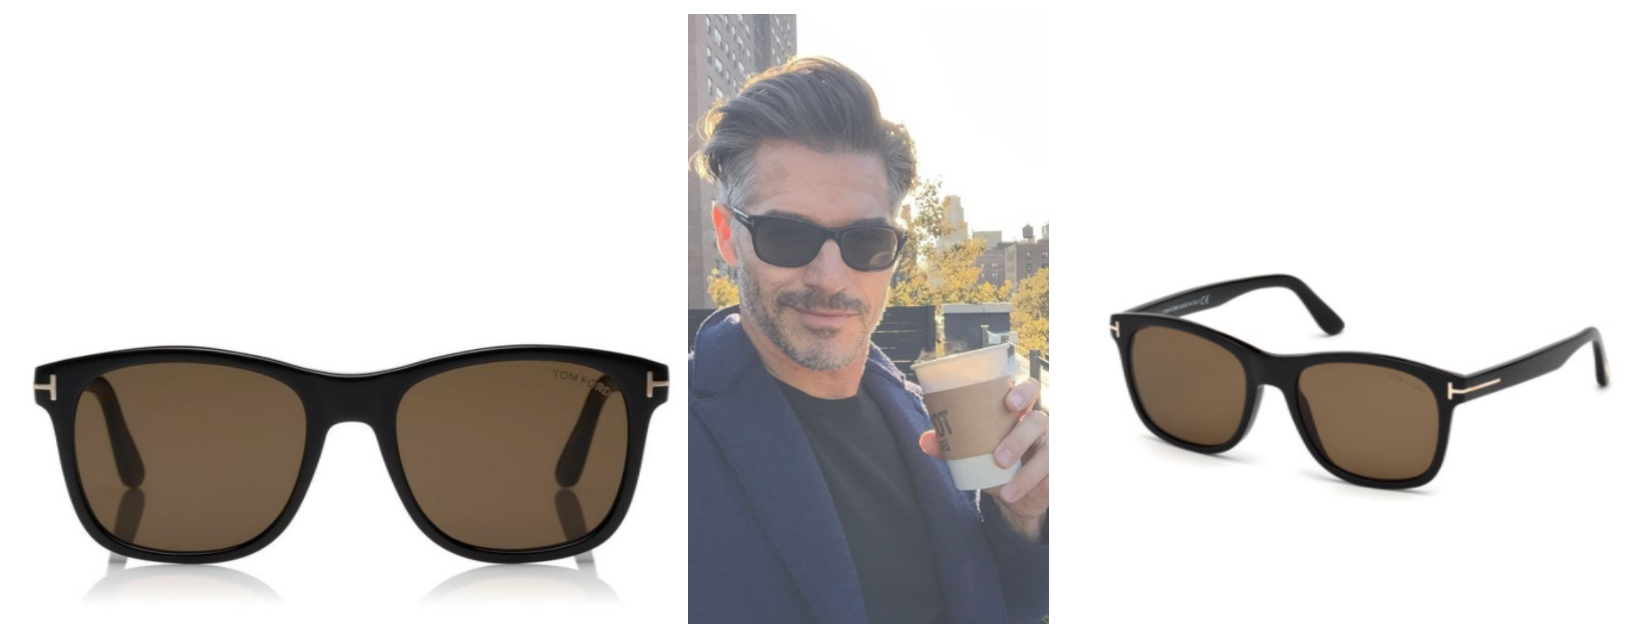 jjeyes Homewood Fairhope sunglasses